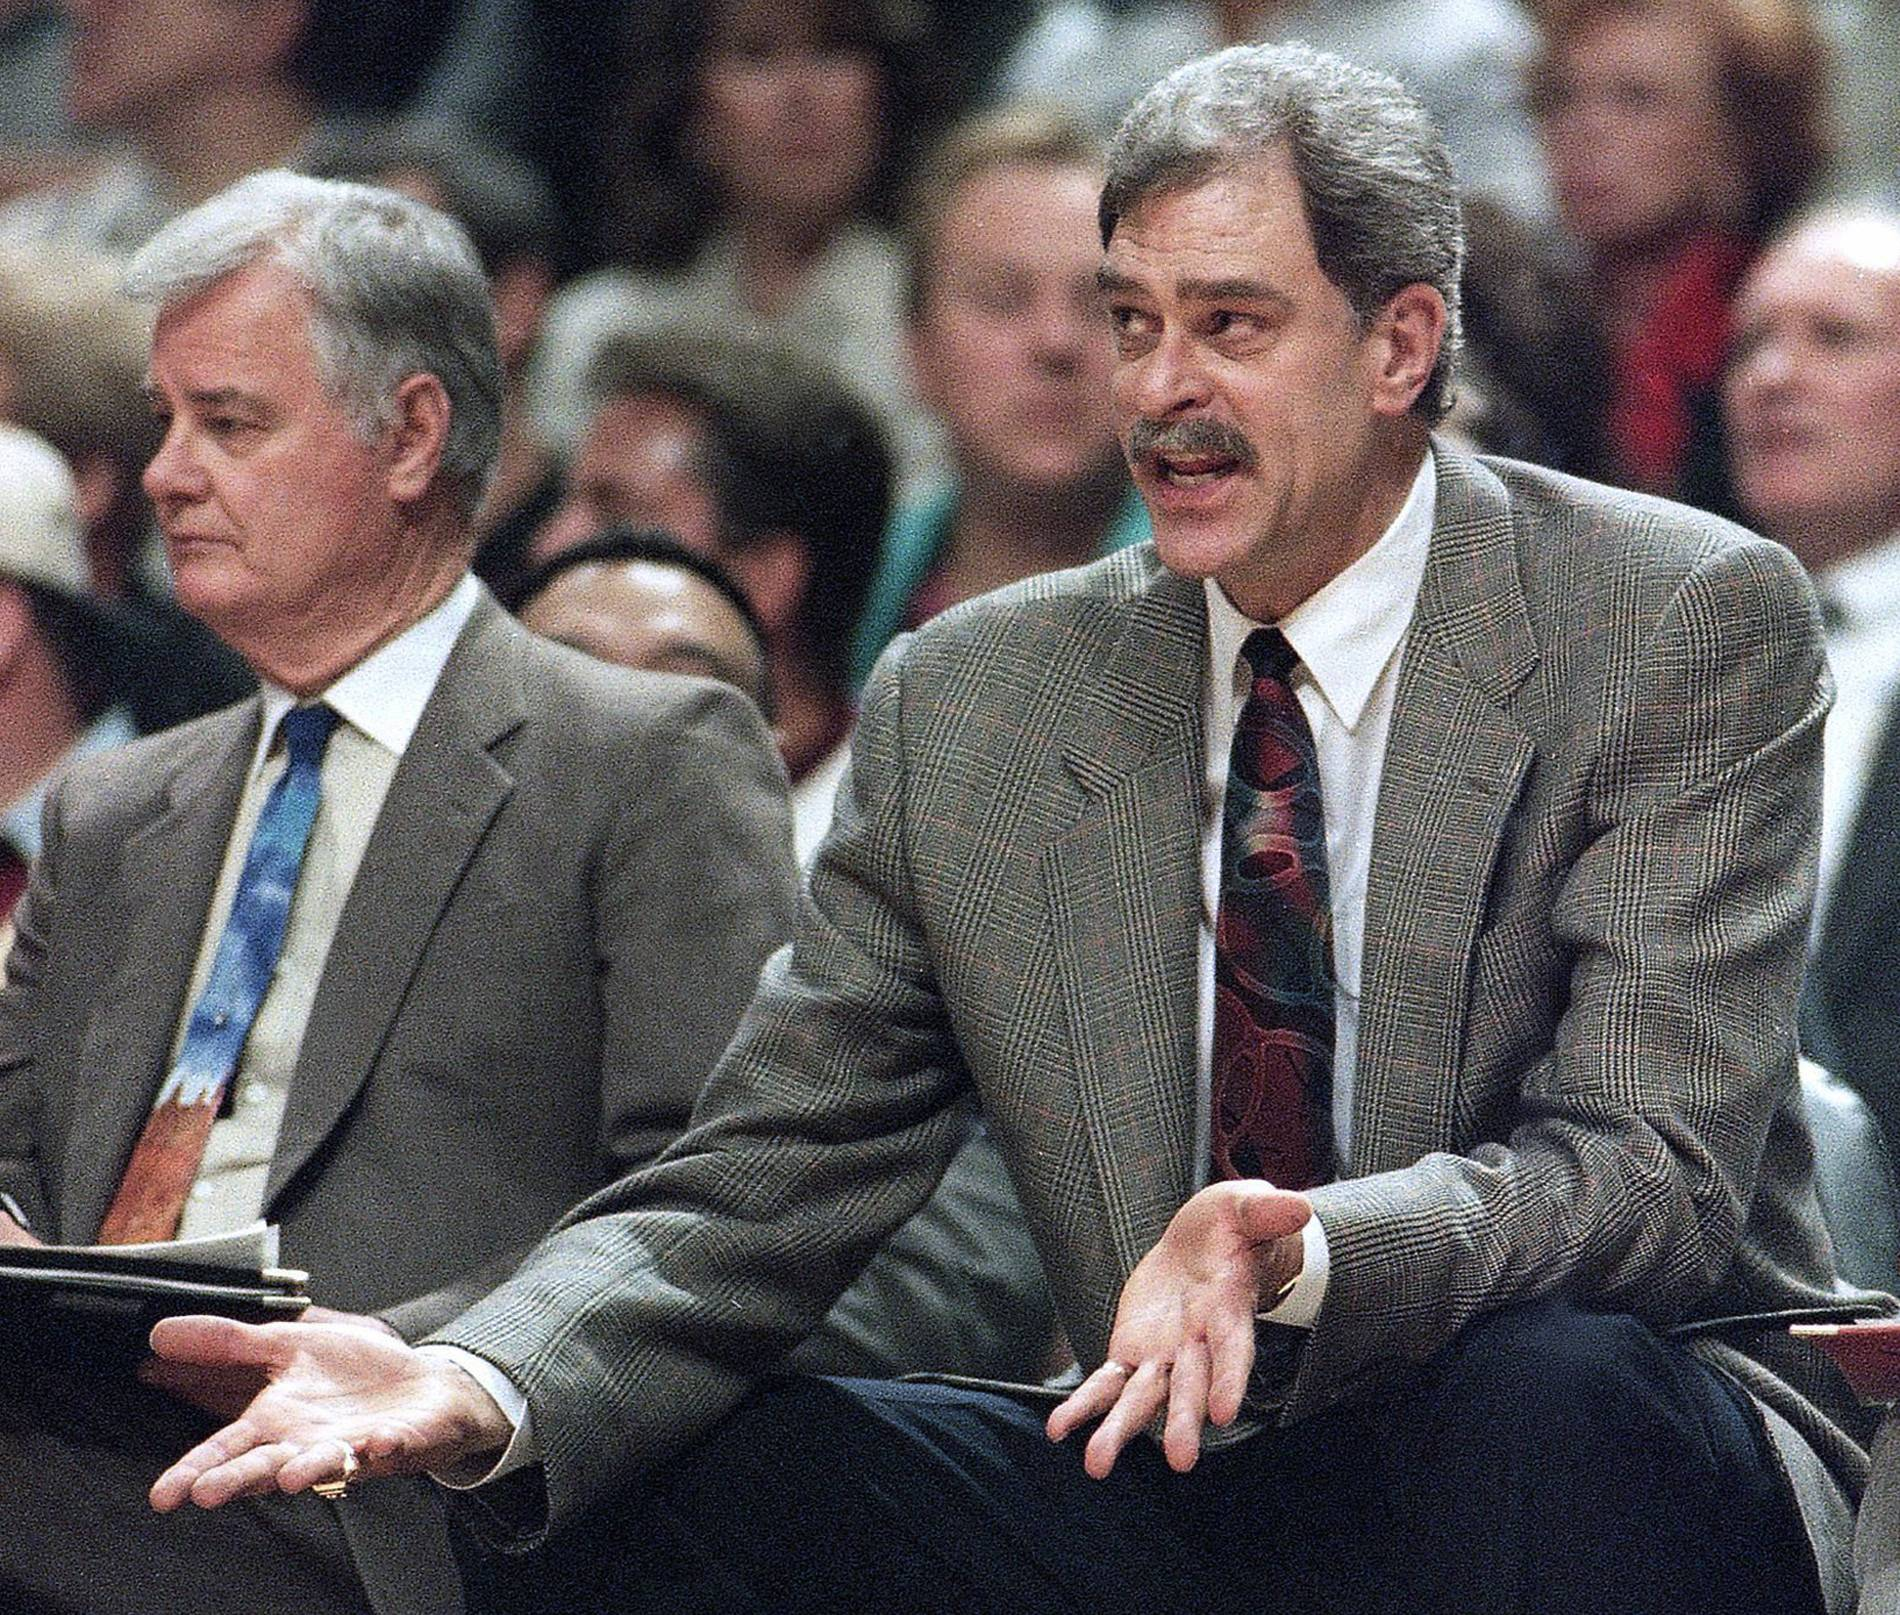 Why coaching legend Tex Winter was instrumental to Bulls success